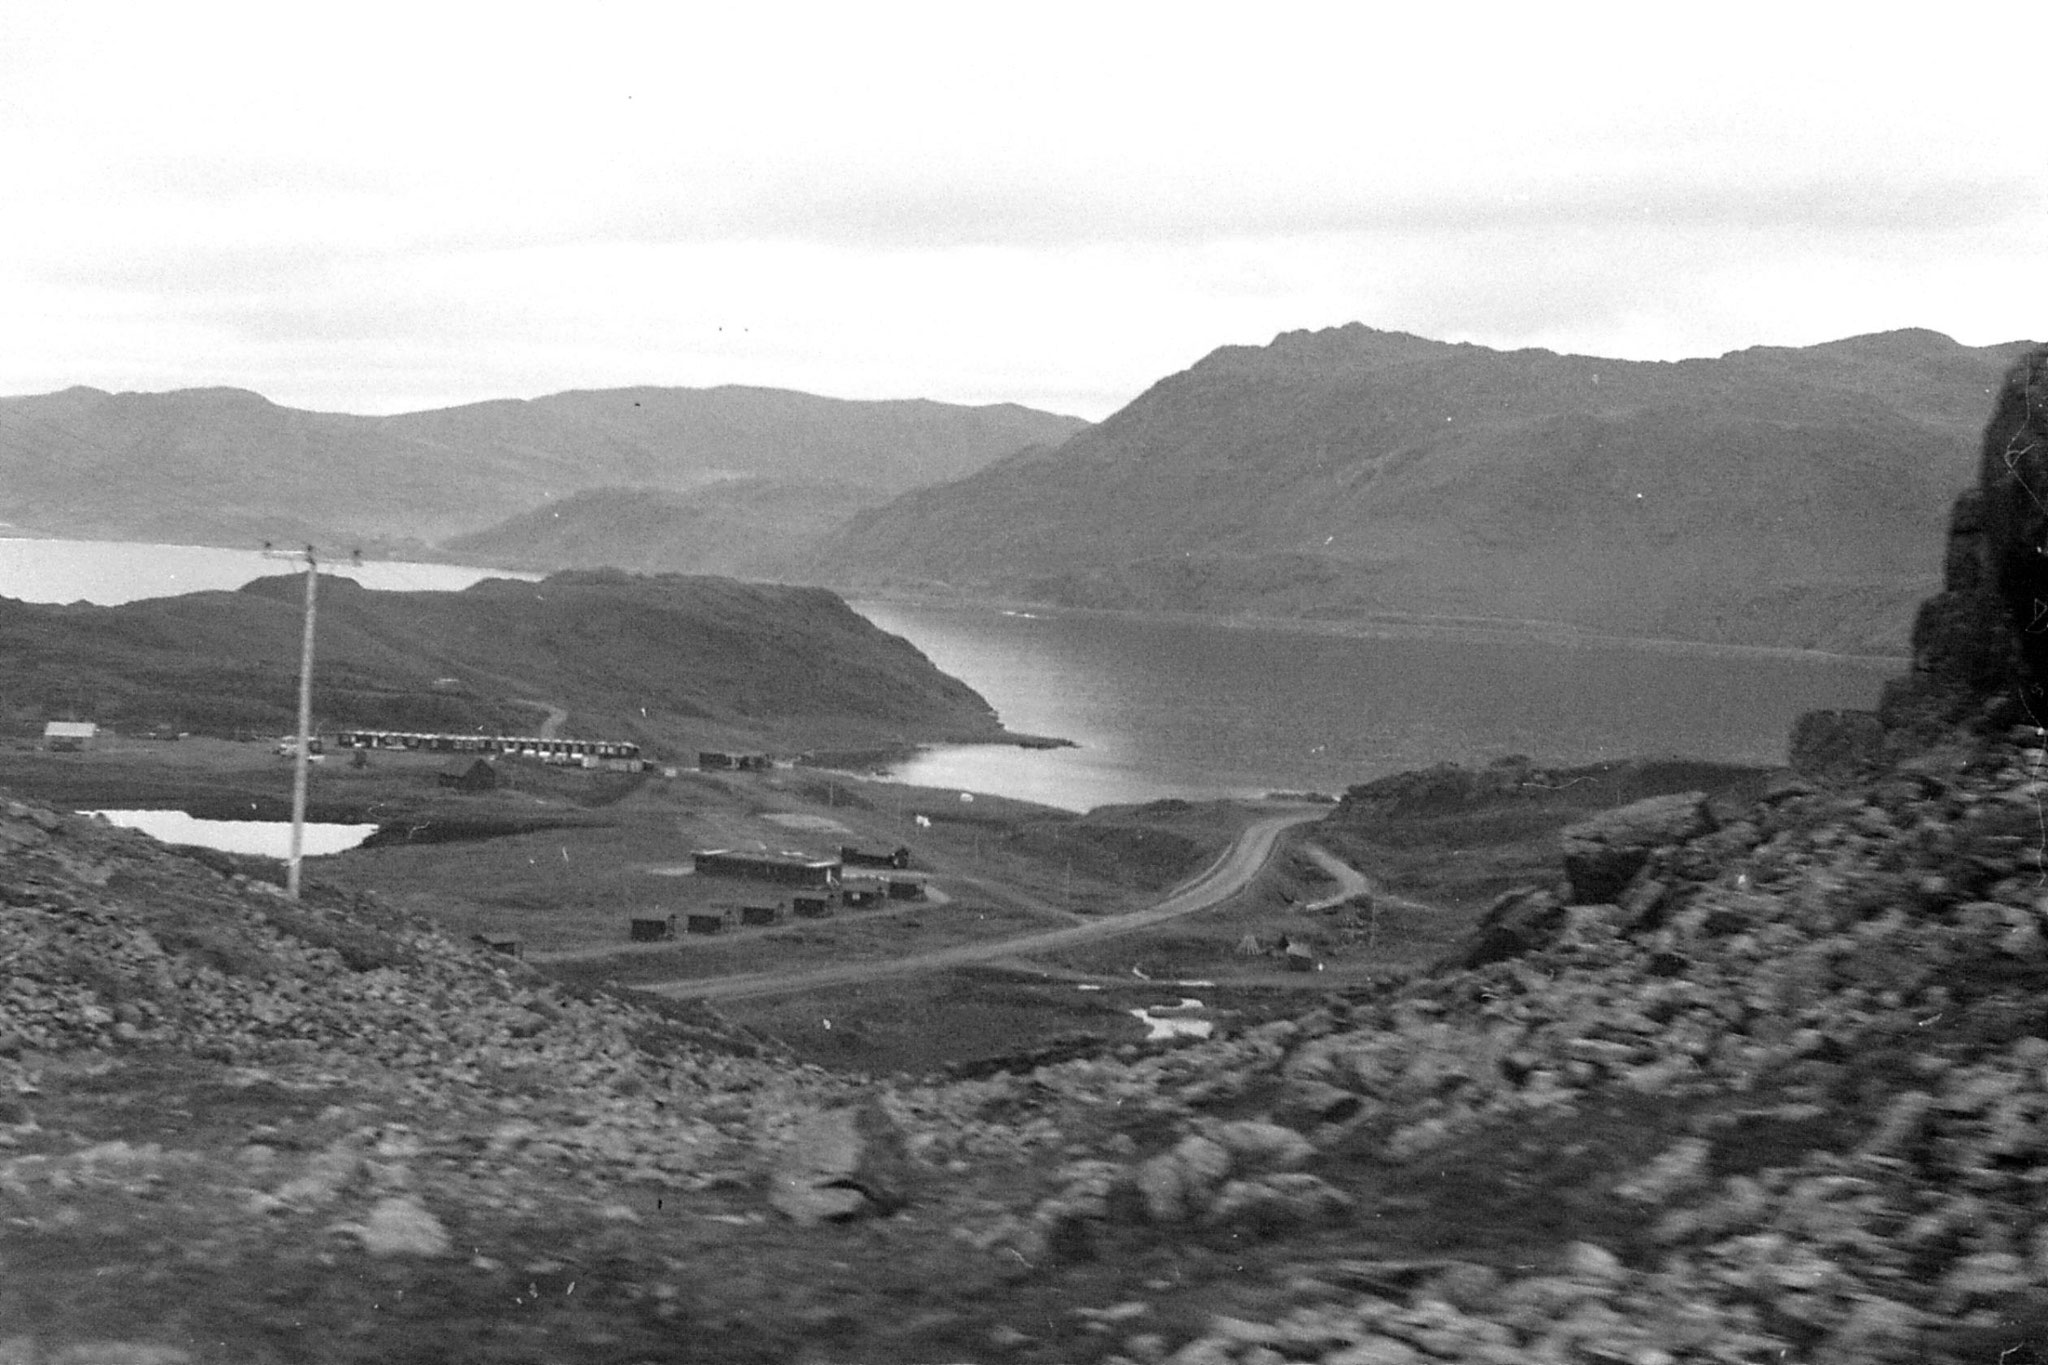 26/9/1988: 30: oil terminals at Honnigsvag